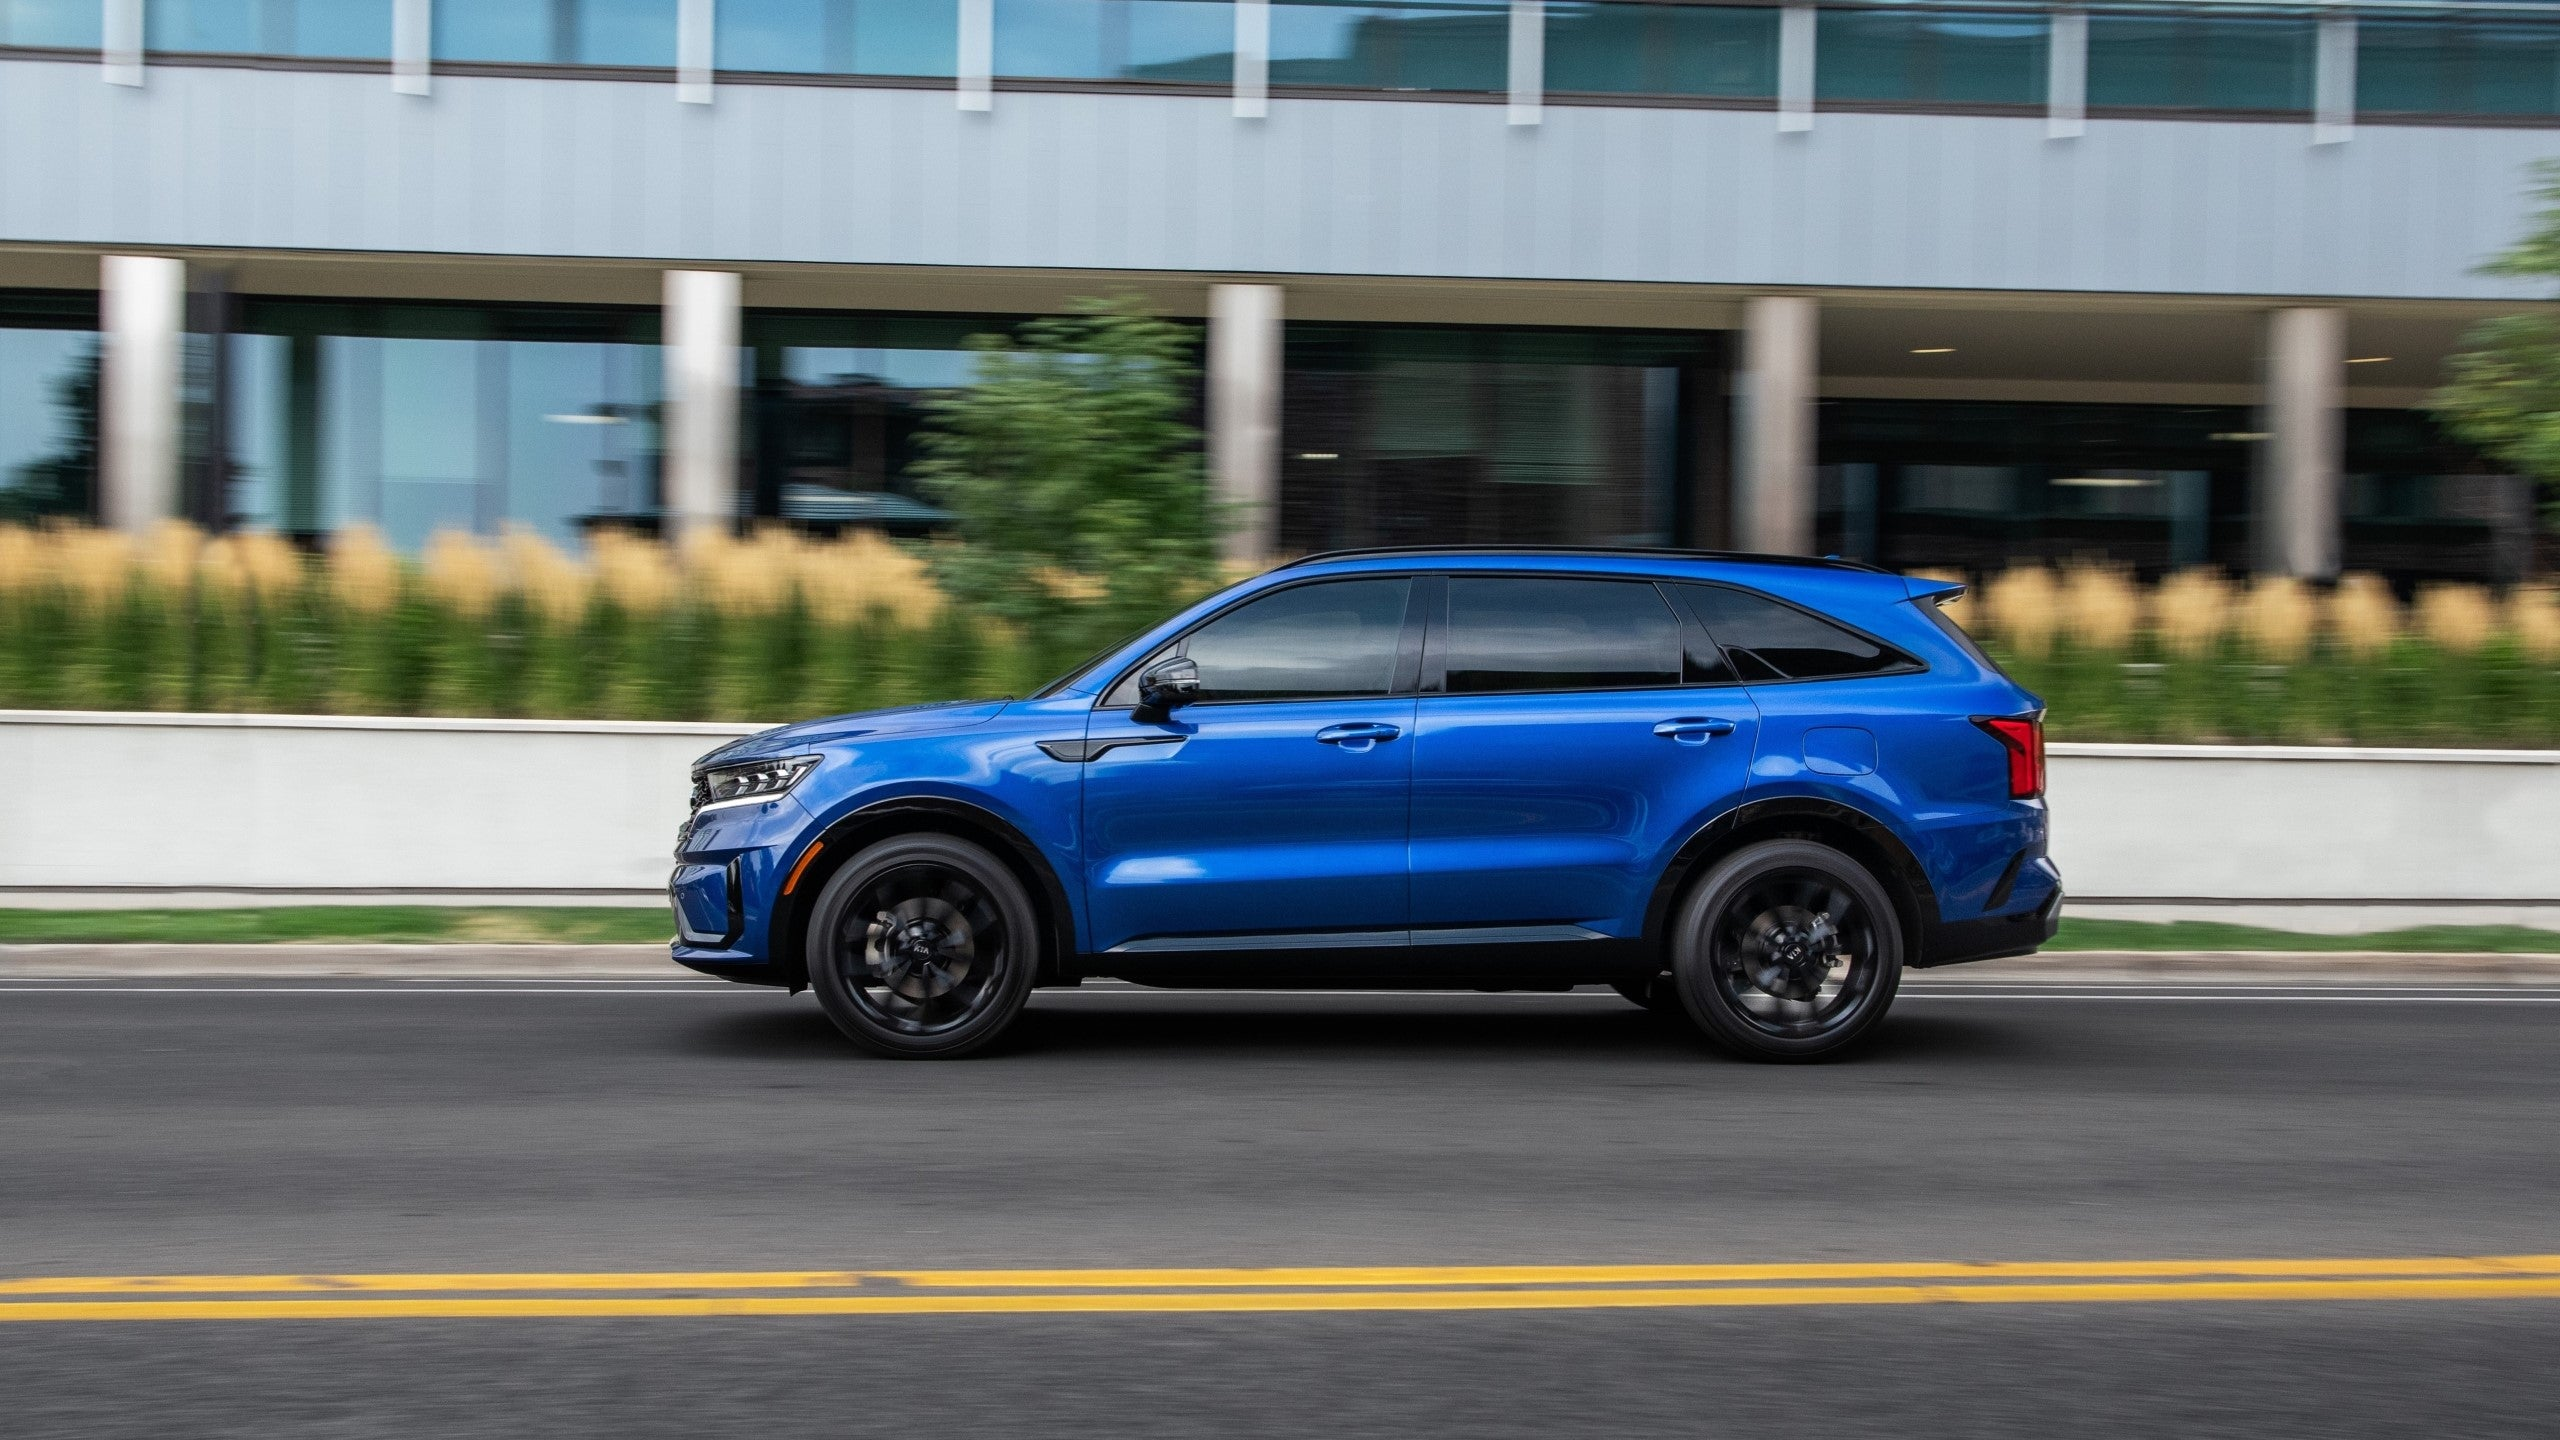 The 2021 Kia Sorento Is a Three-Row SUV That Delivers Up ...